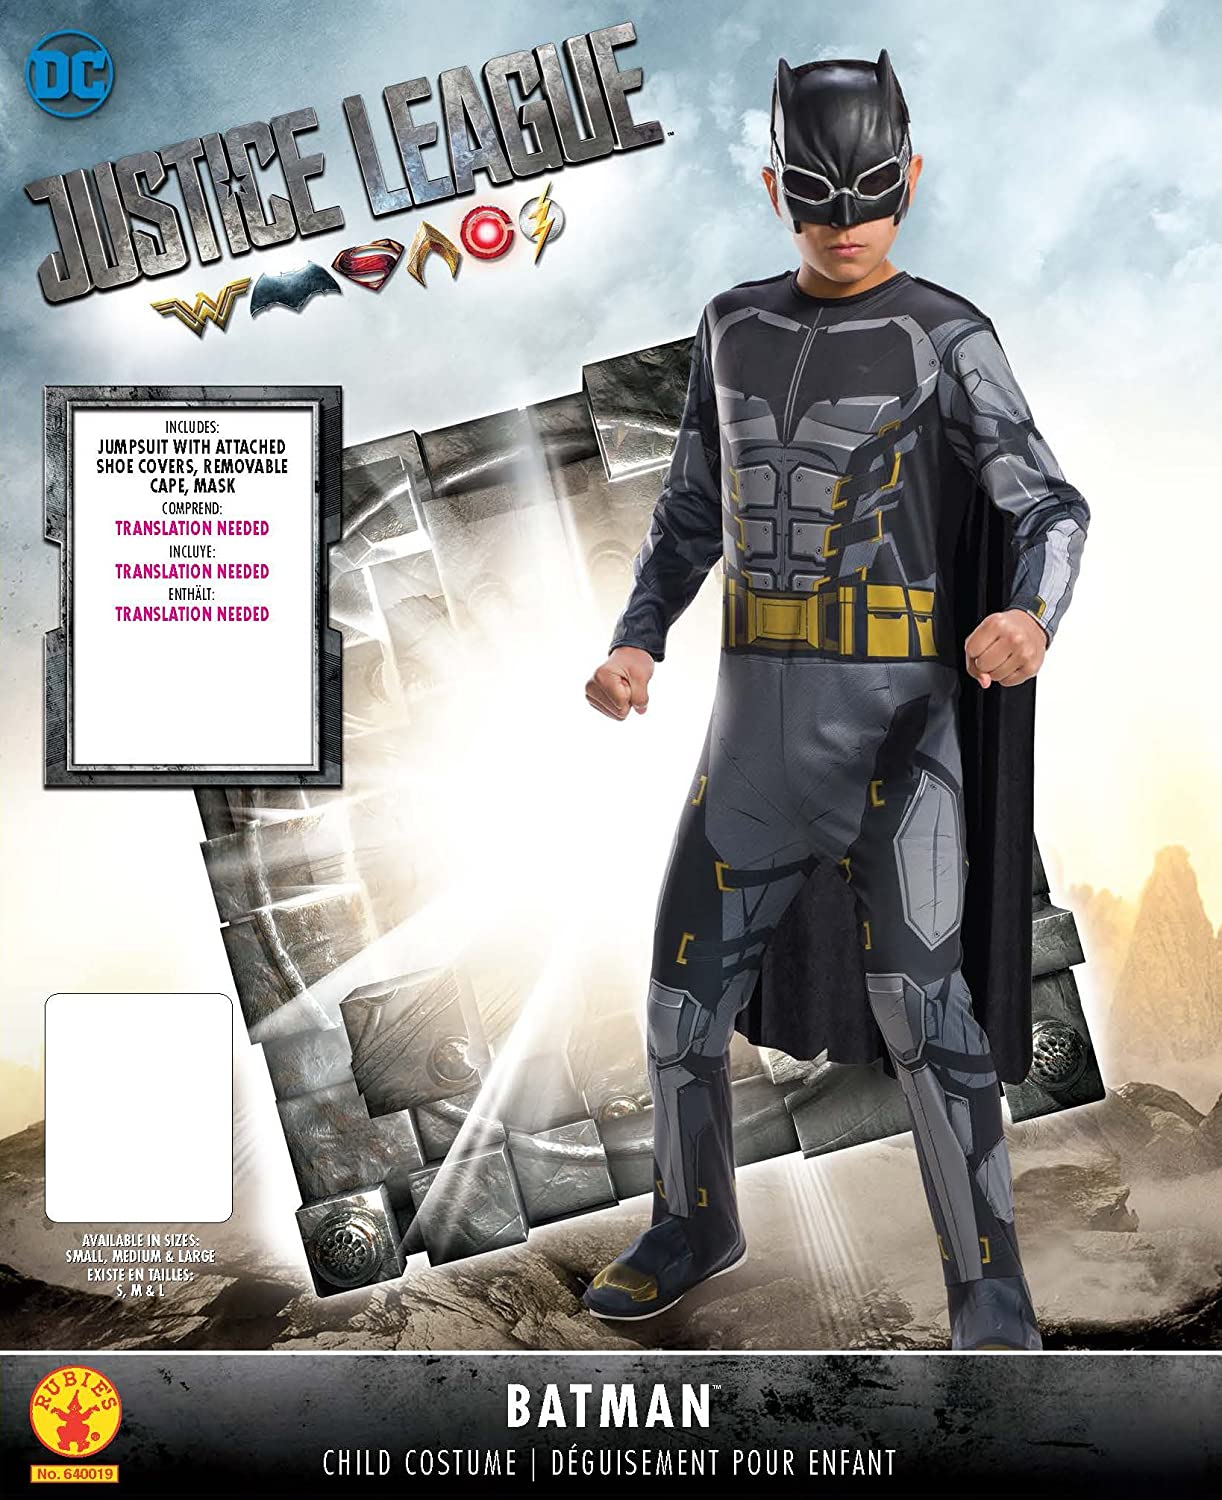 Domestic 640019 Small Rubies Rubies Justice League Childs Tactical Batman Costume